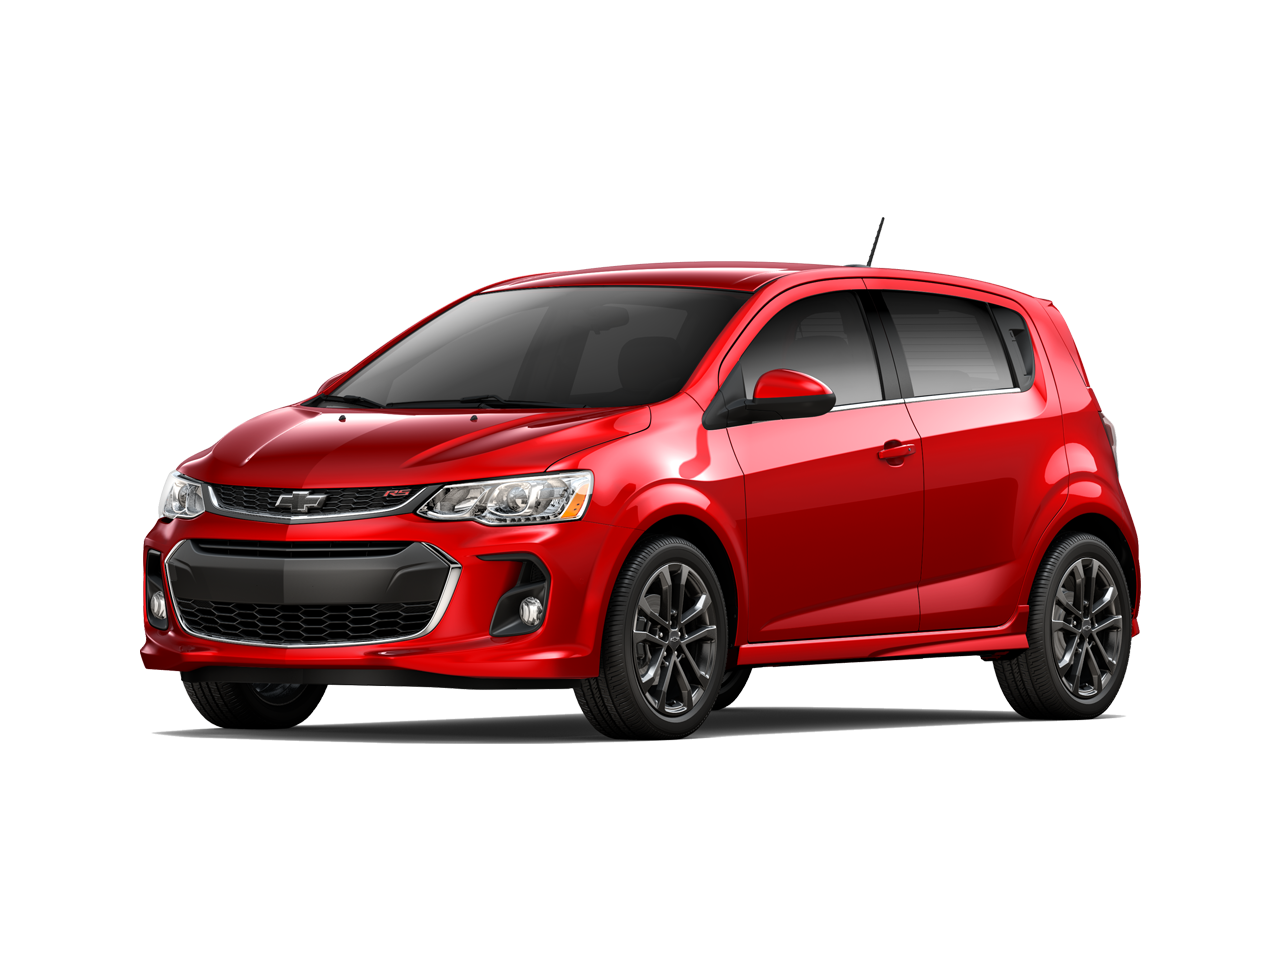 Chevrolet Sonic Owners Manual: Hill Start Assist (HSA)